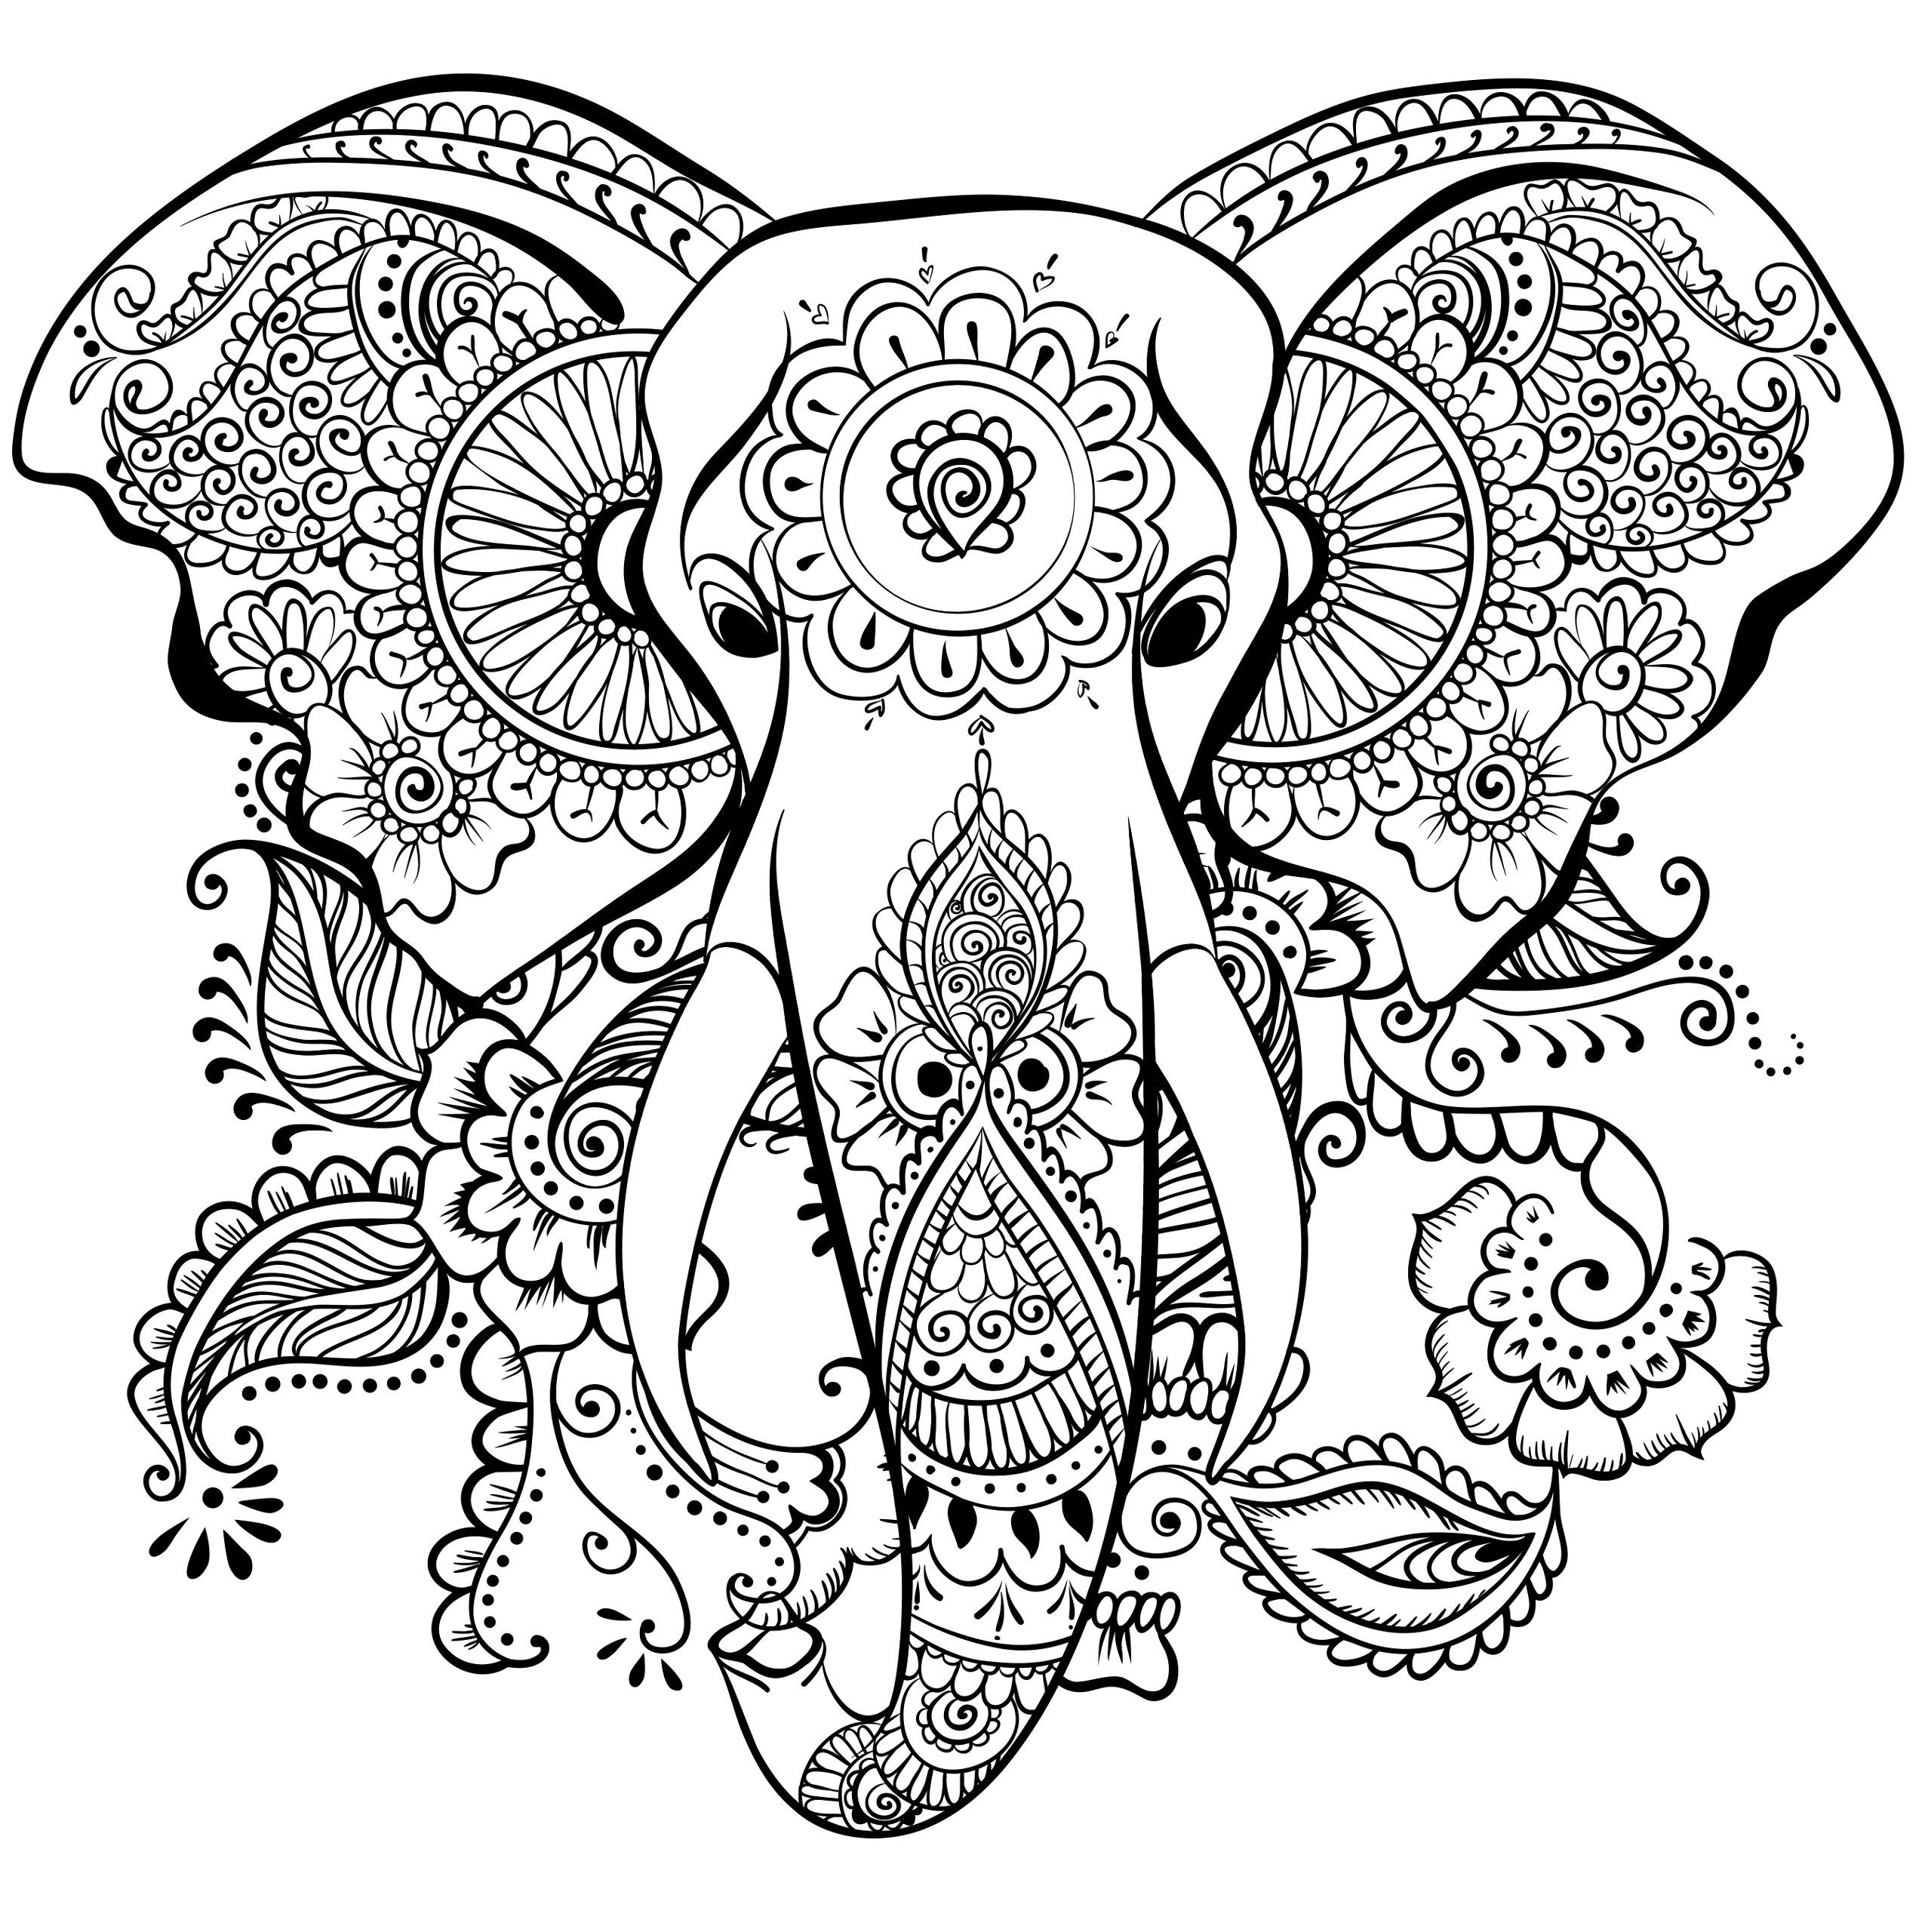 Wild At Heart Adult Coloring Book | Skizzenbücher | Pinterest ...